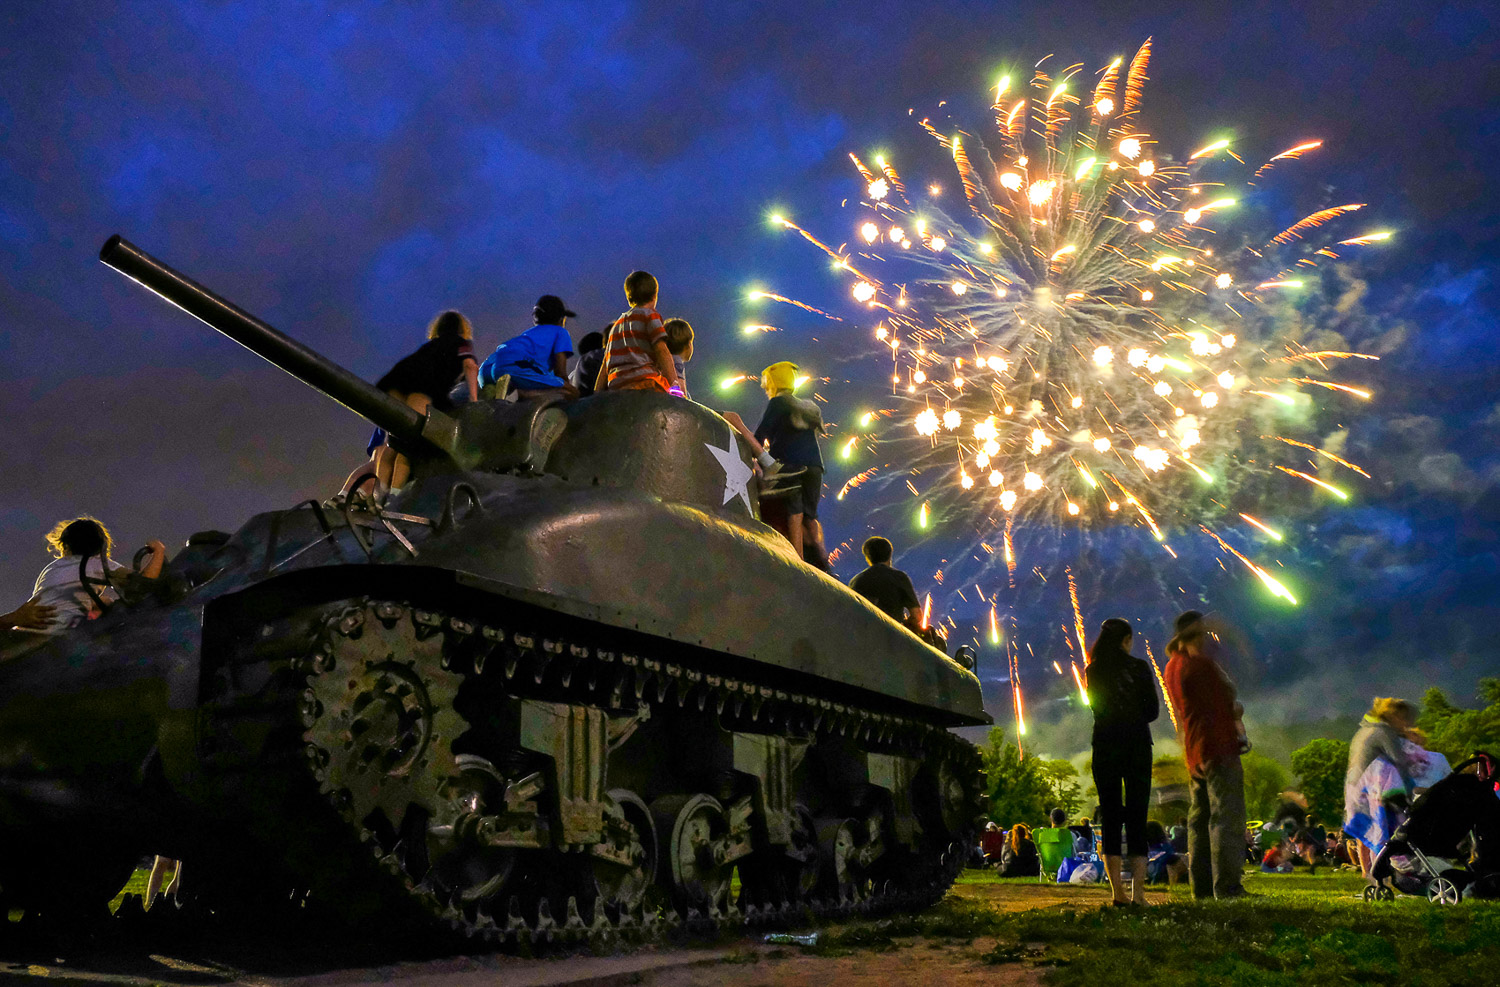 Fuji X-T2, .5 sec @ f/4, ISO 6400, 18-55mm  Children gather on top of the tank at Patton Park in Hamilton as they enjoy a fireworks display and music at the conclusion of the Community Block Party, Sunday, June 25, 2017. [Wicked Local Staff Photo / David Sokol]